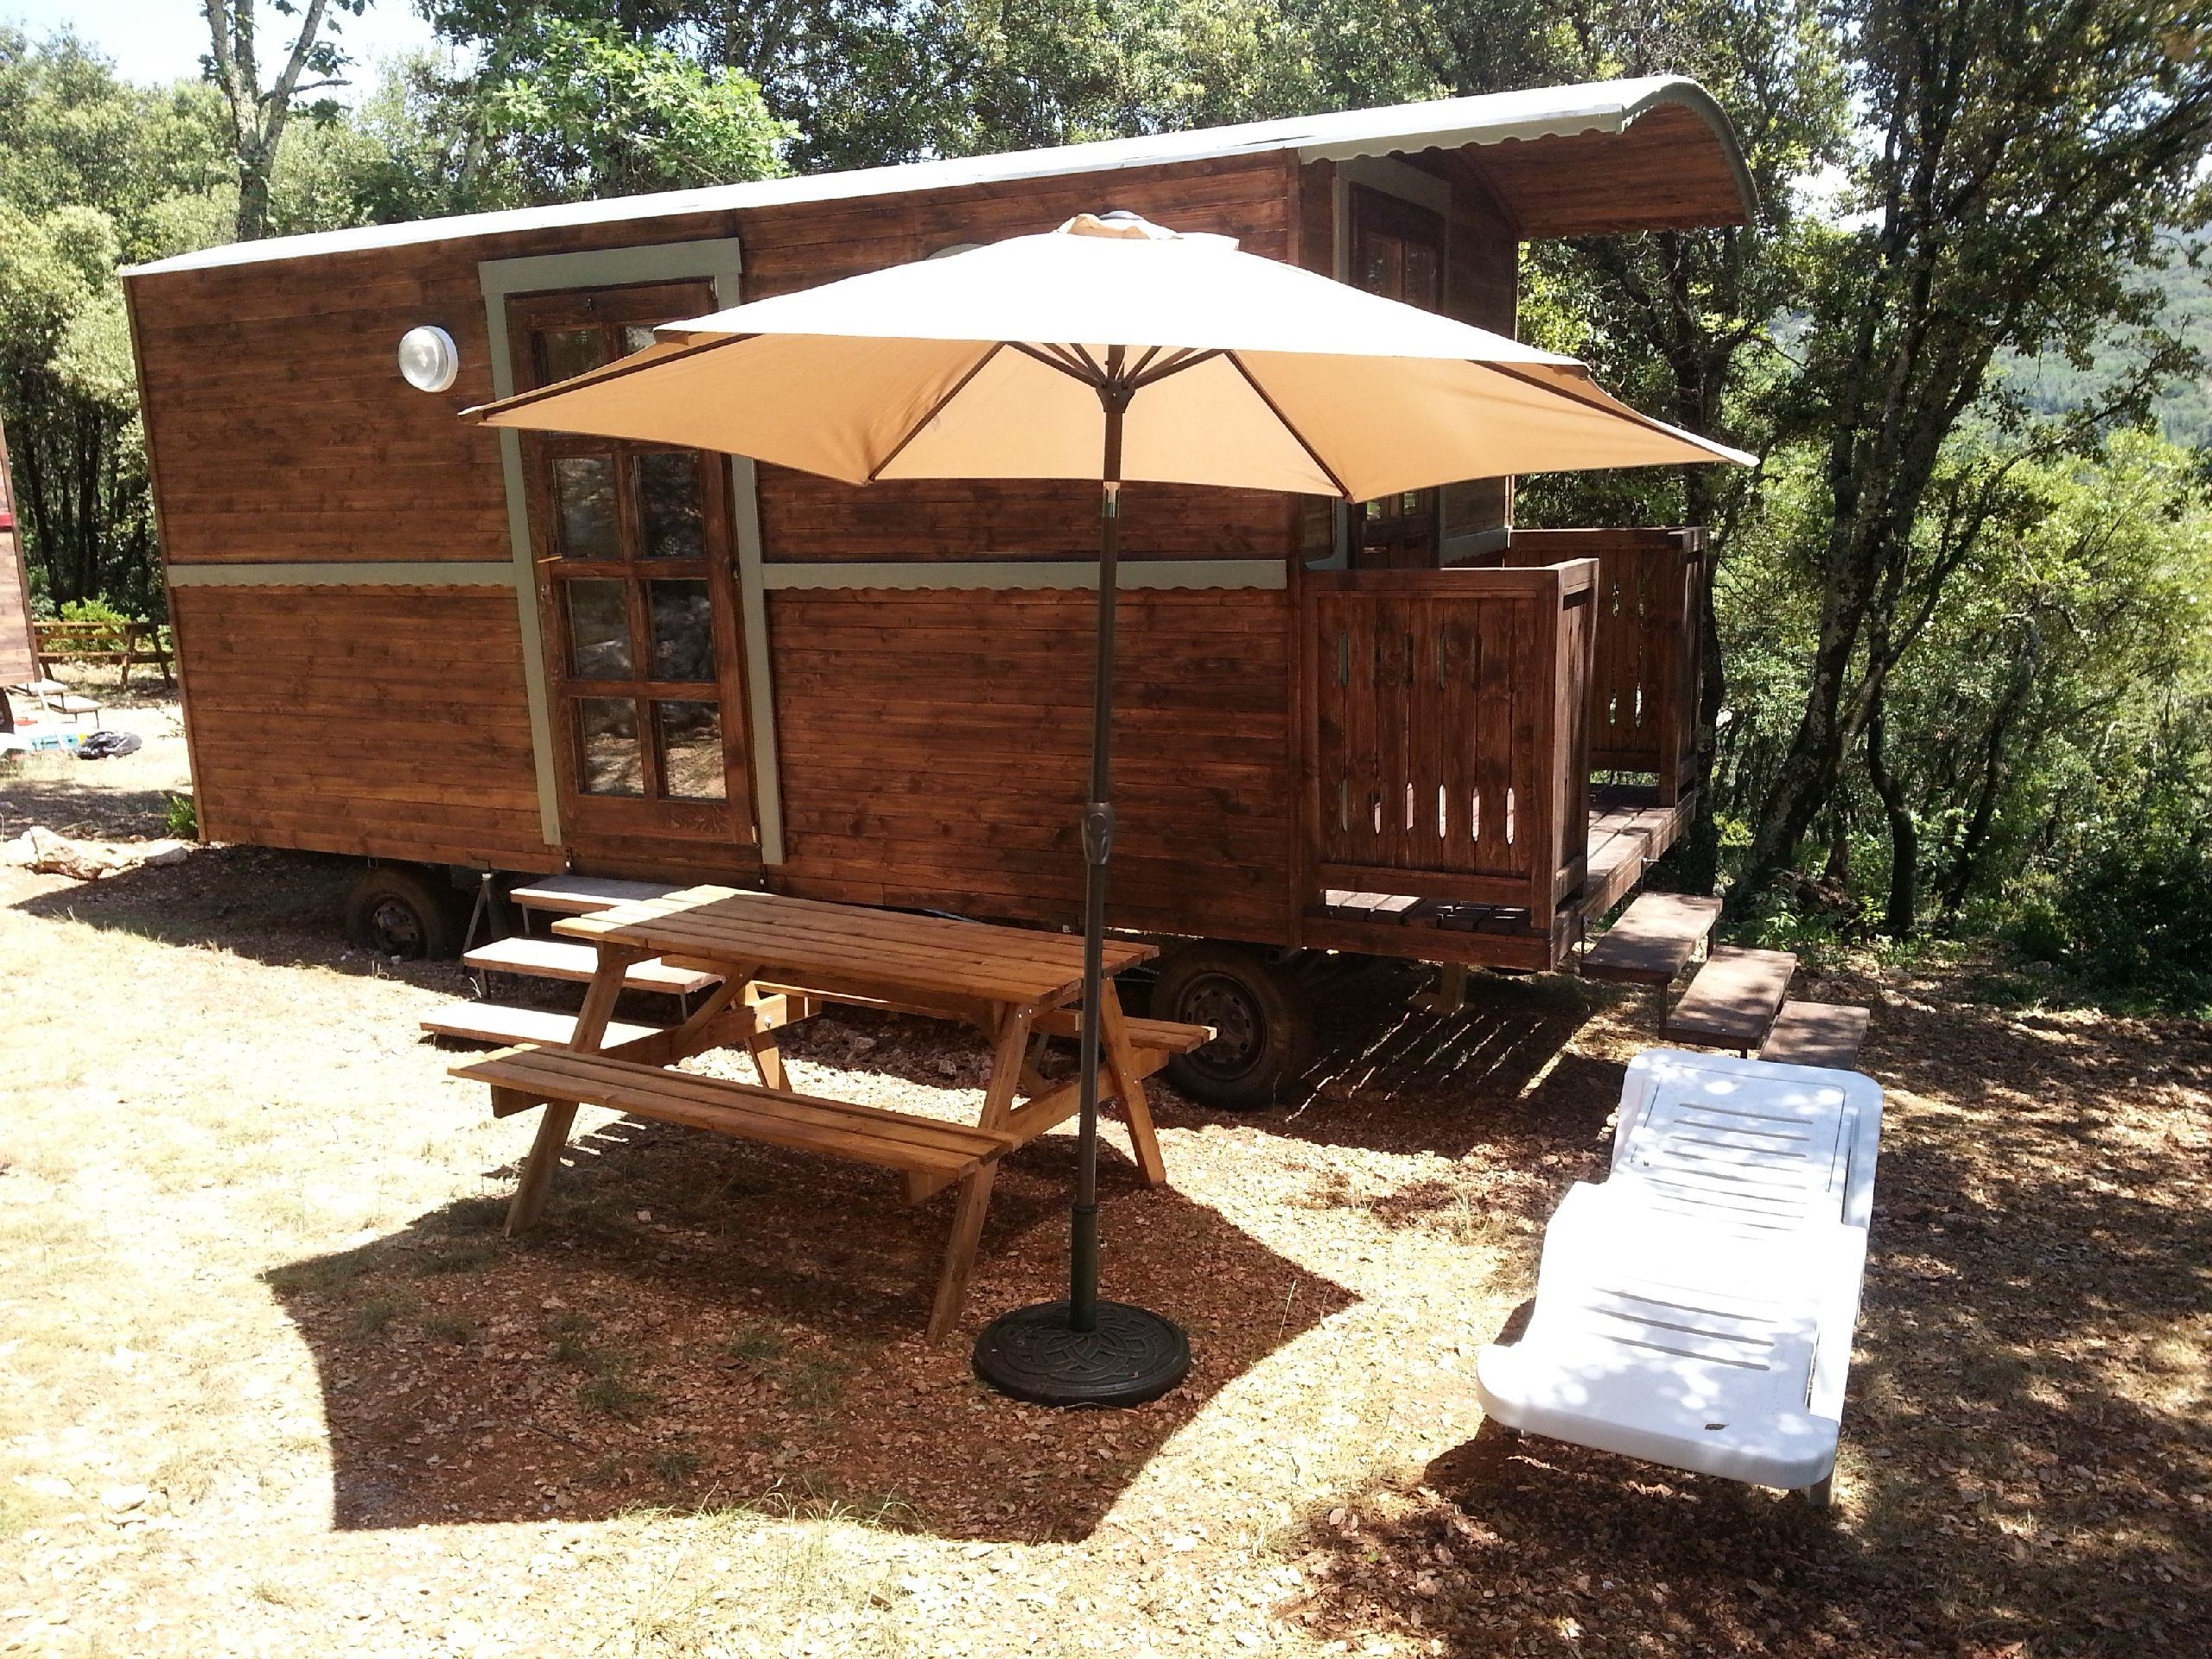 Location - Roulotte Camping Sans Sanitaires - Camping Ibie